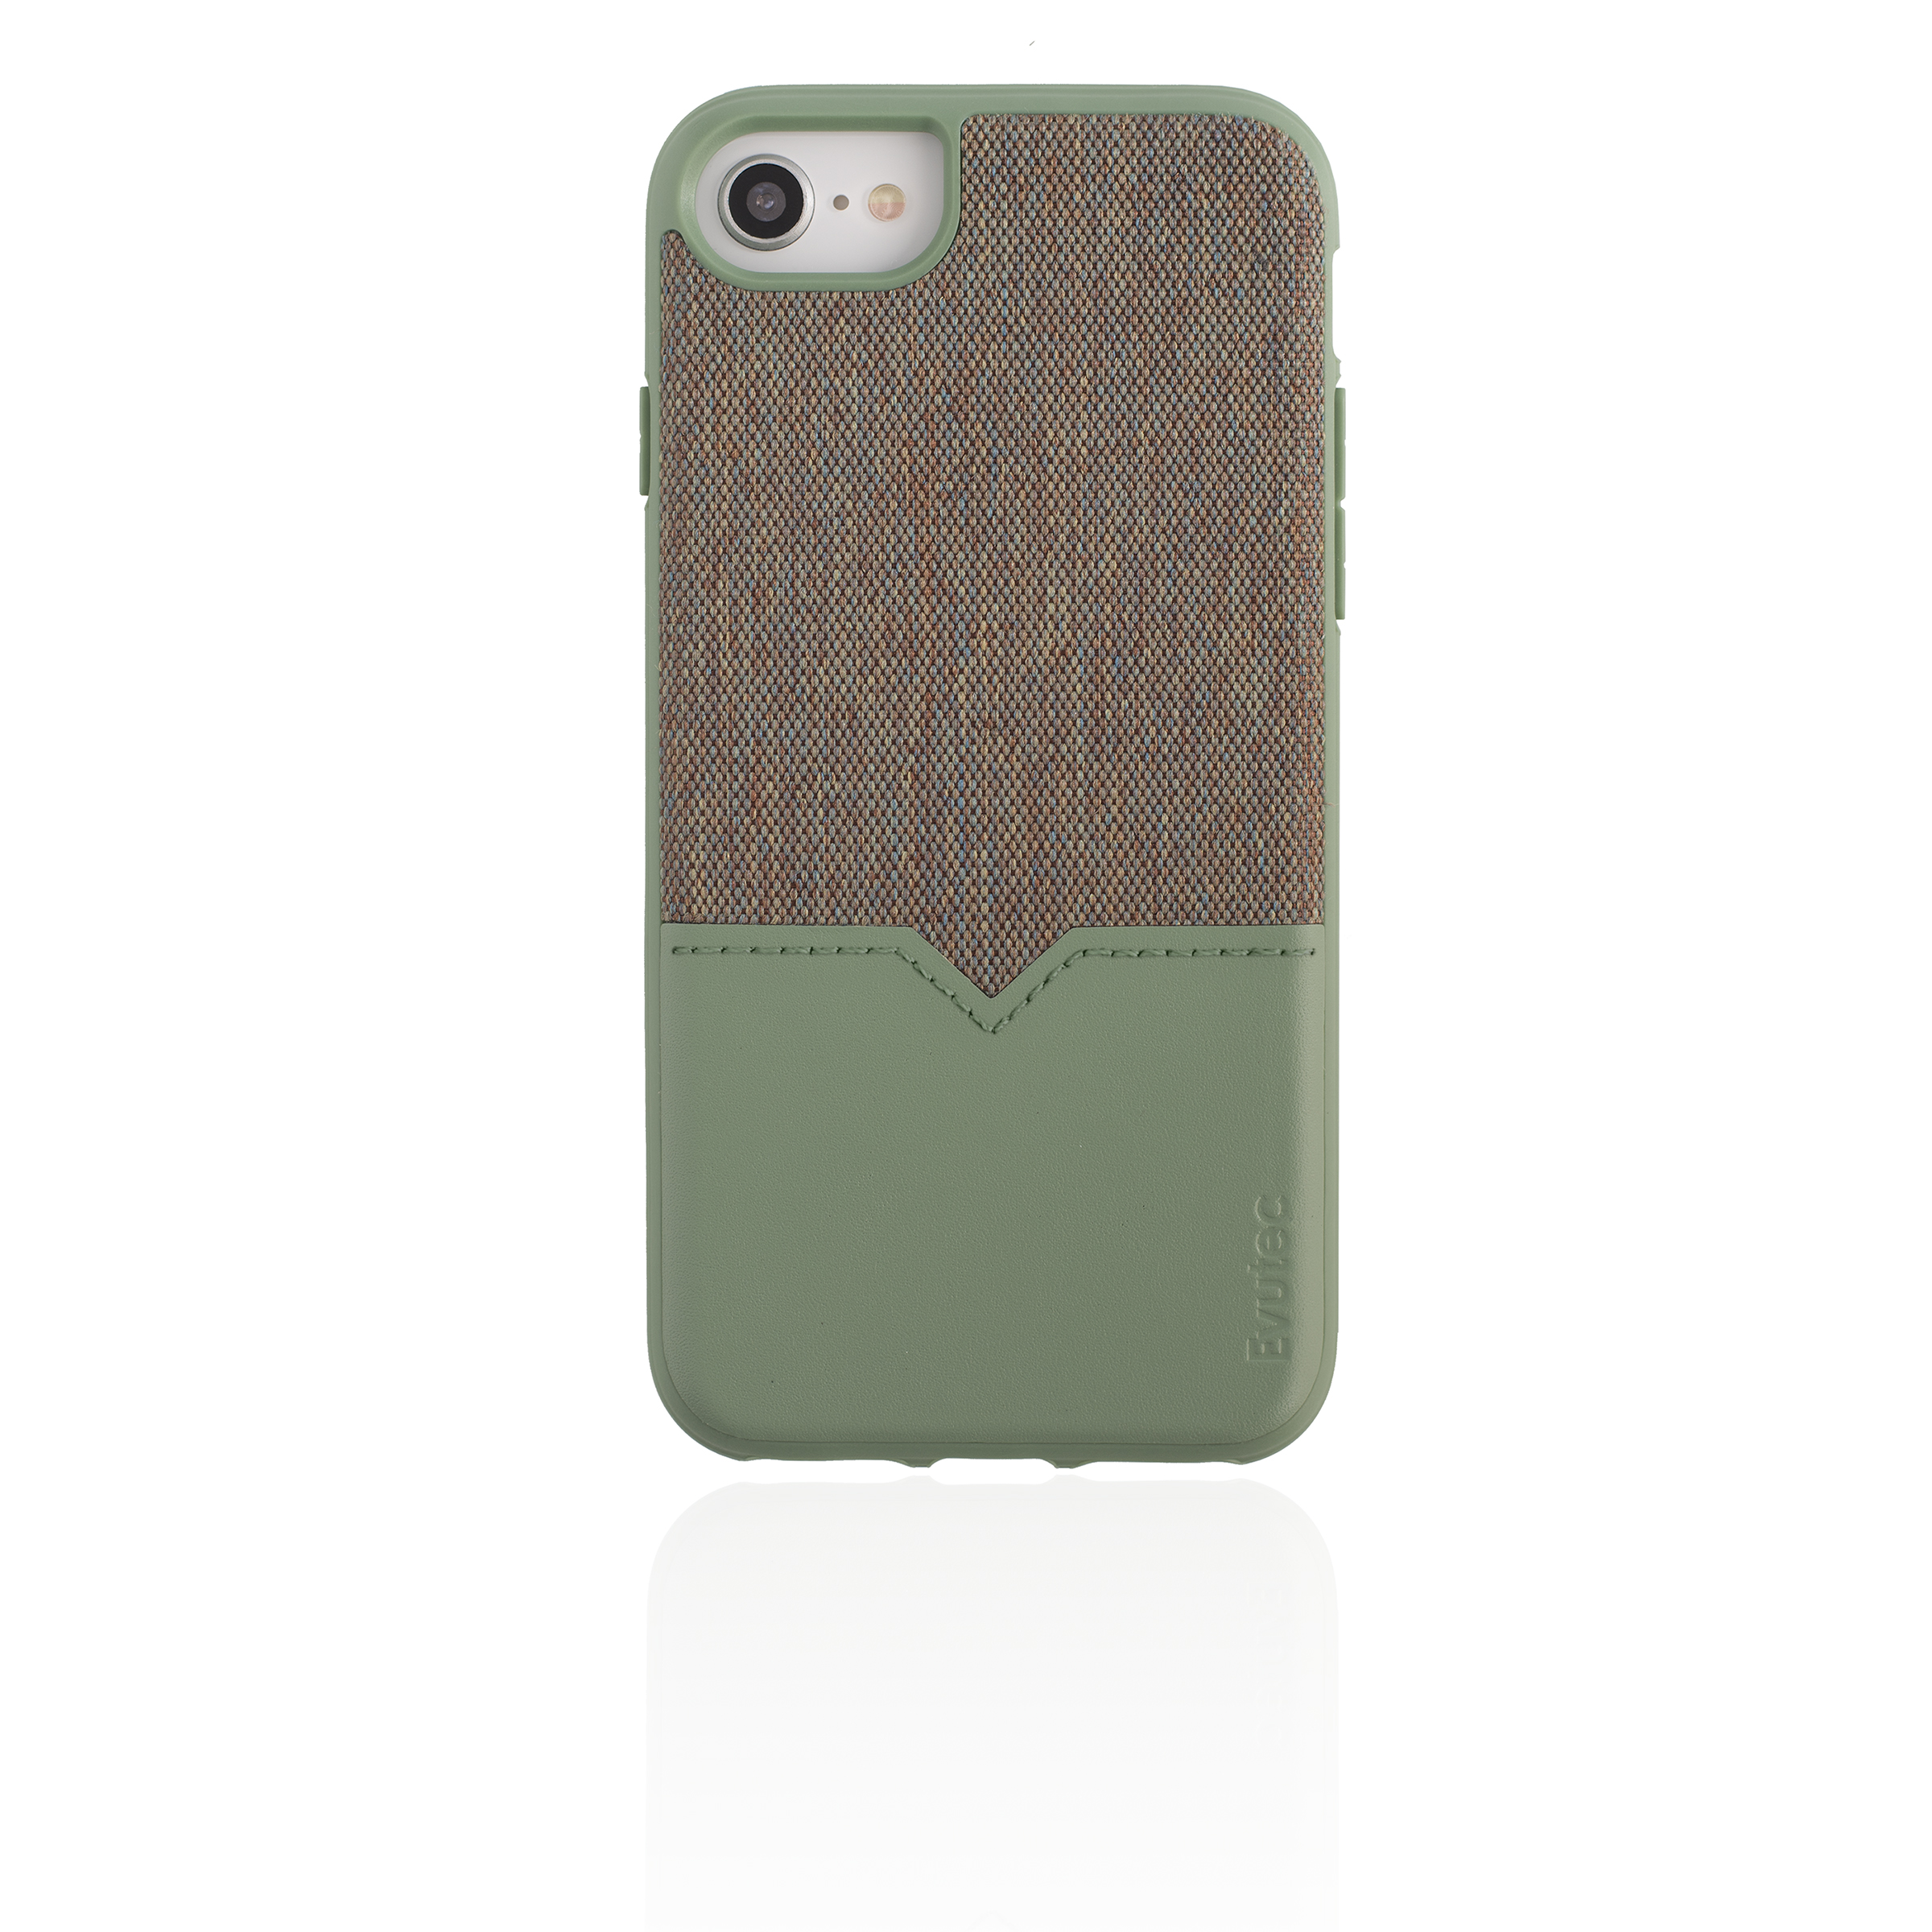 EVUTEC NH680MTD10 SAGE IPHONE CASE FOR 6 6S 7 7S & 8 WITH